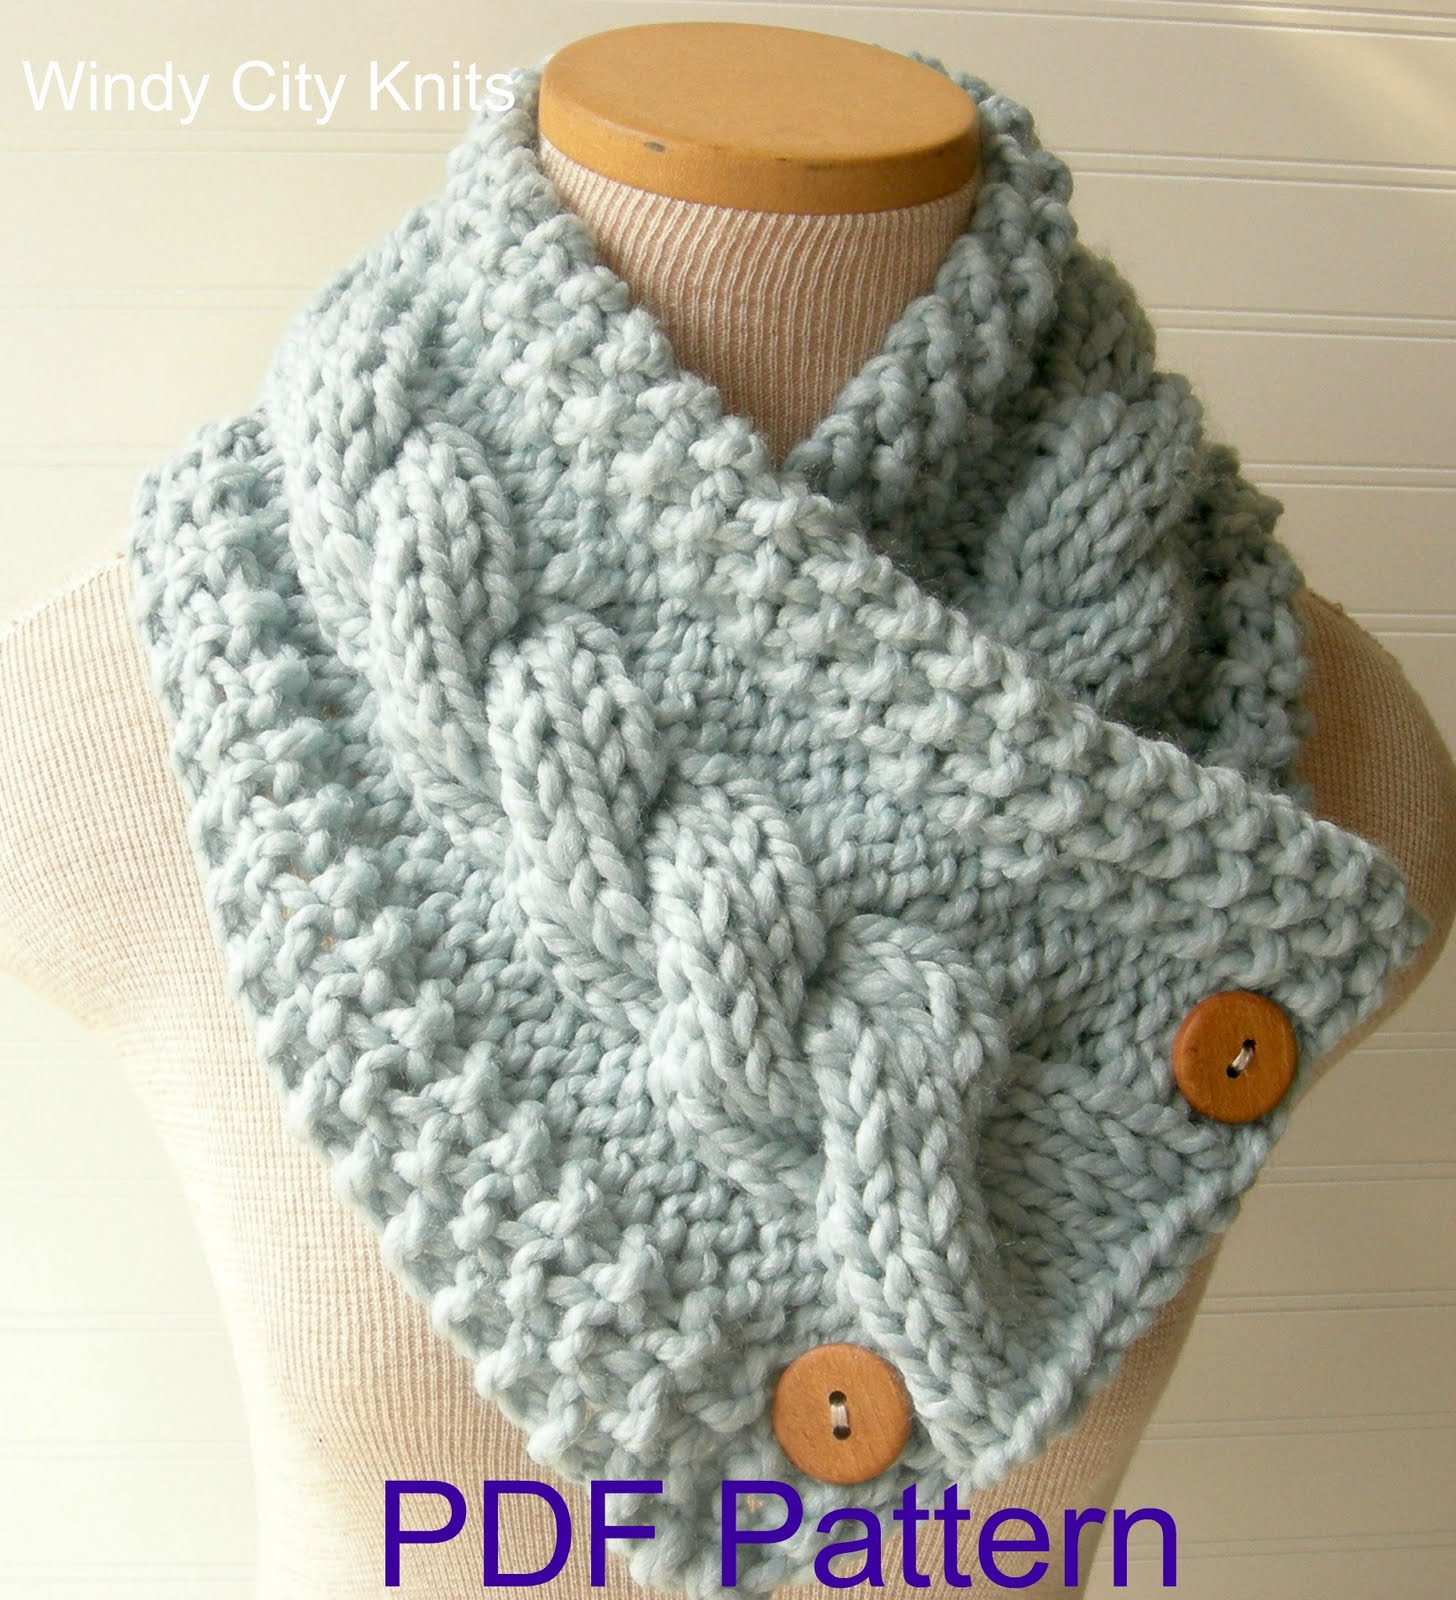 Cable Knit Scarves Patterns : WindyCityKnits: Knit Cable Cowl Scarf Pattern Pdf